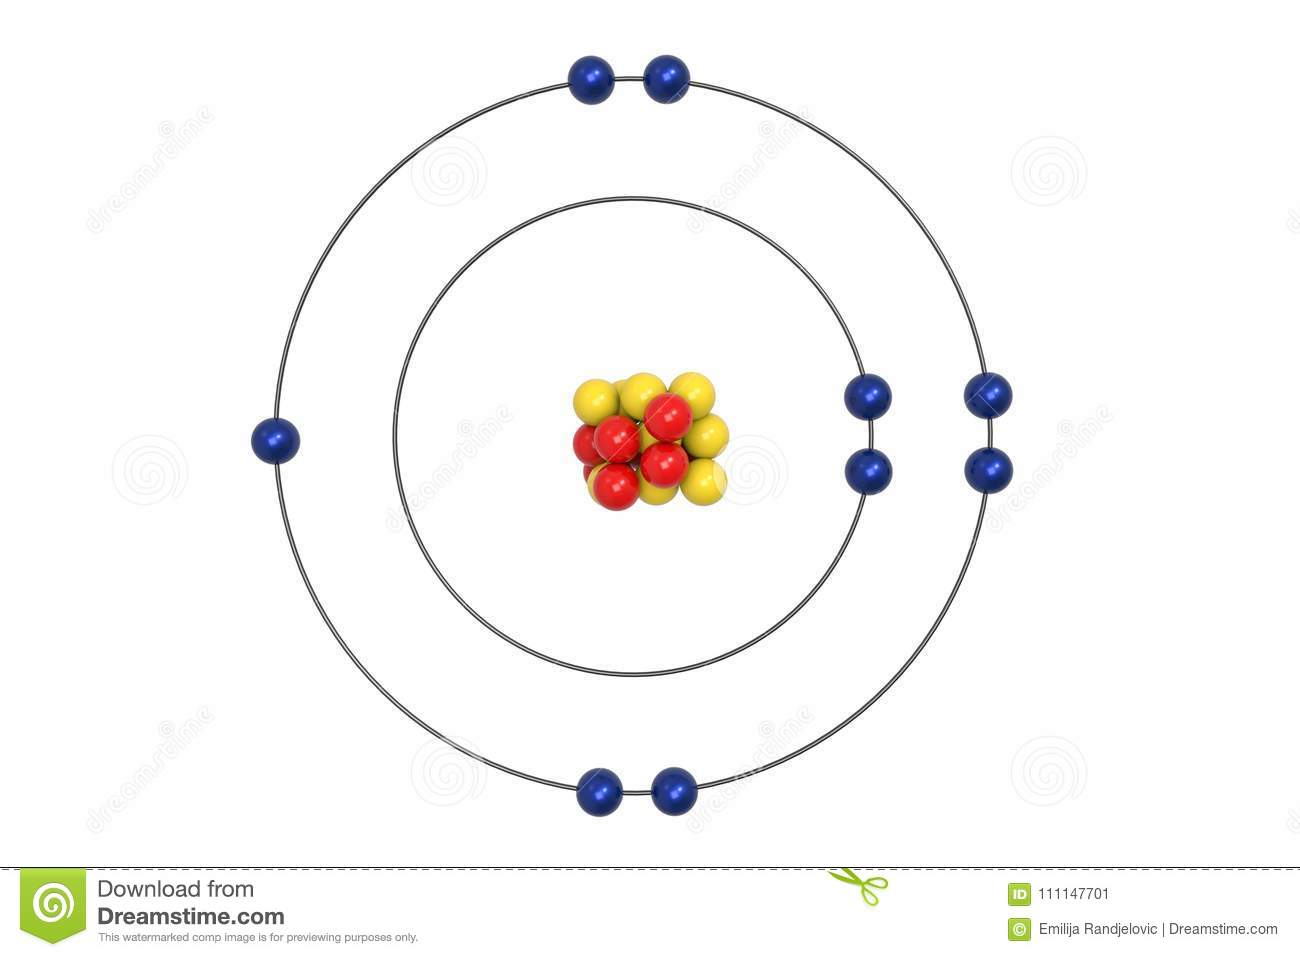 Diagram of fluorine bohr model auto wiring diagram today fluorine atom bohr model with proton neutron and electron stock rh dreamstime com nitrogen bohr model diagram argon bohr model diagram ccuart Images